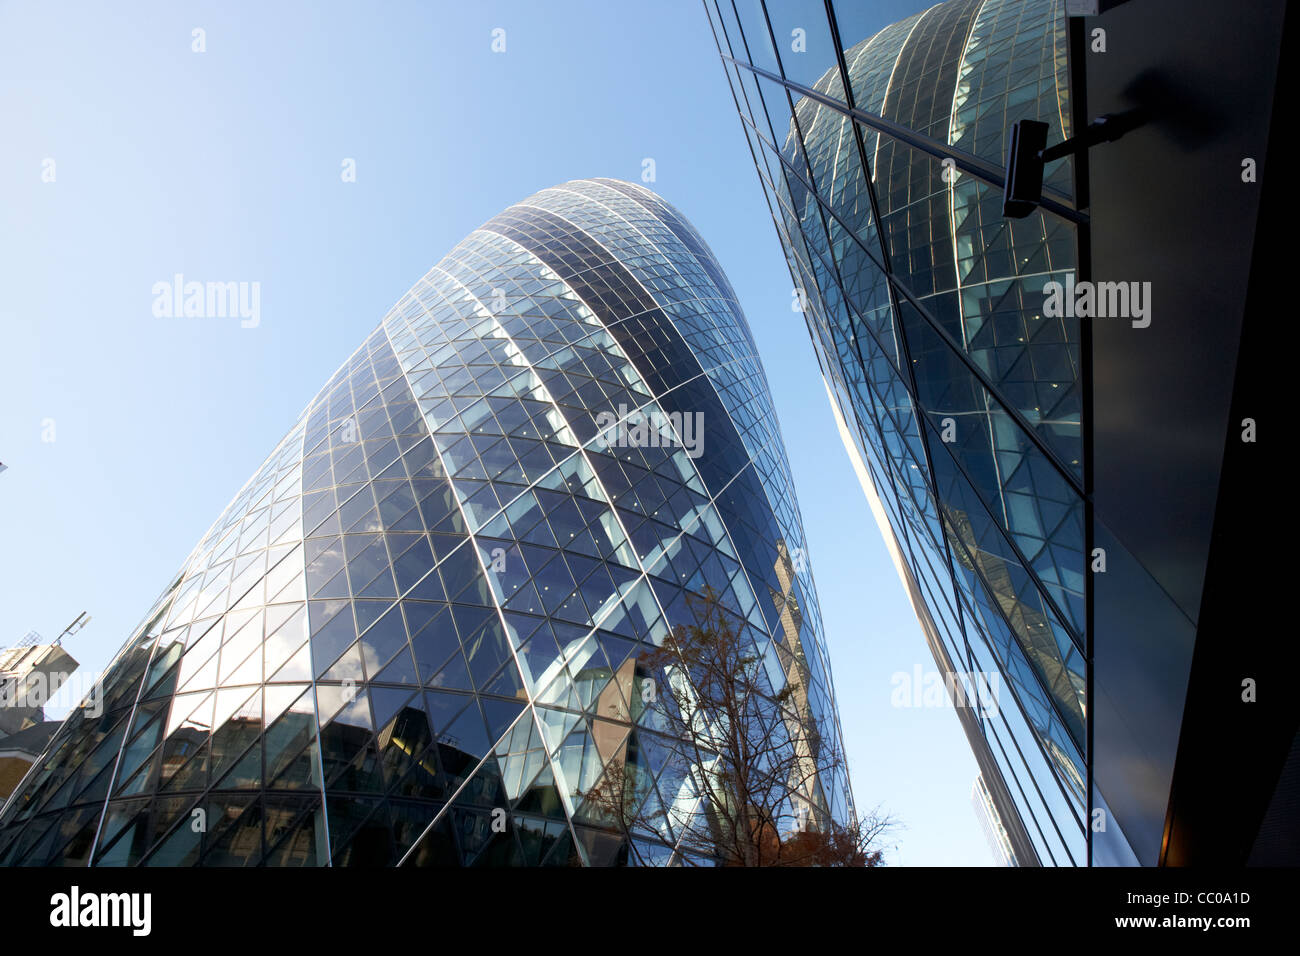 The swiss re gherkin building at 30 St Mary Axe city of London England UK United kingdom - Stock Image